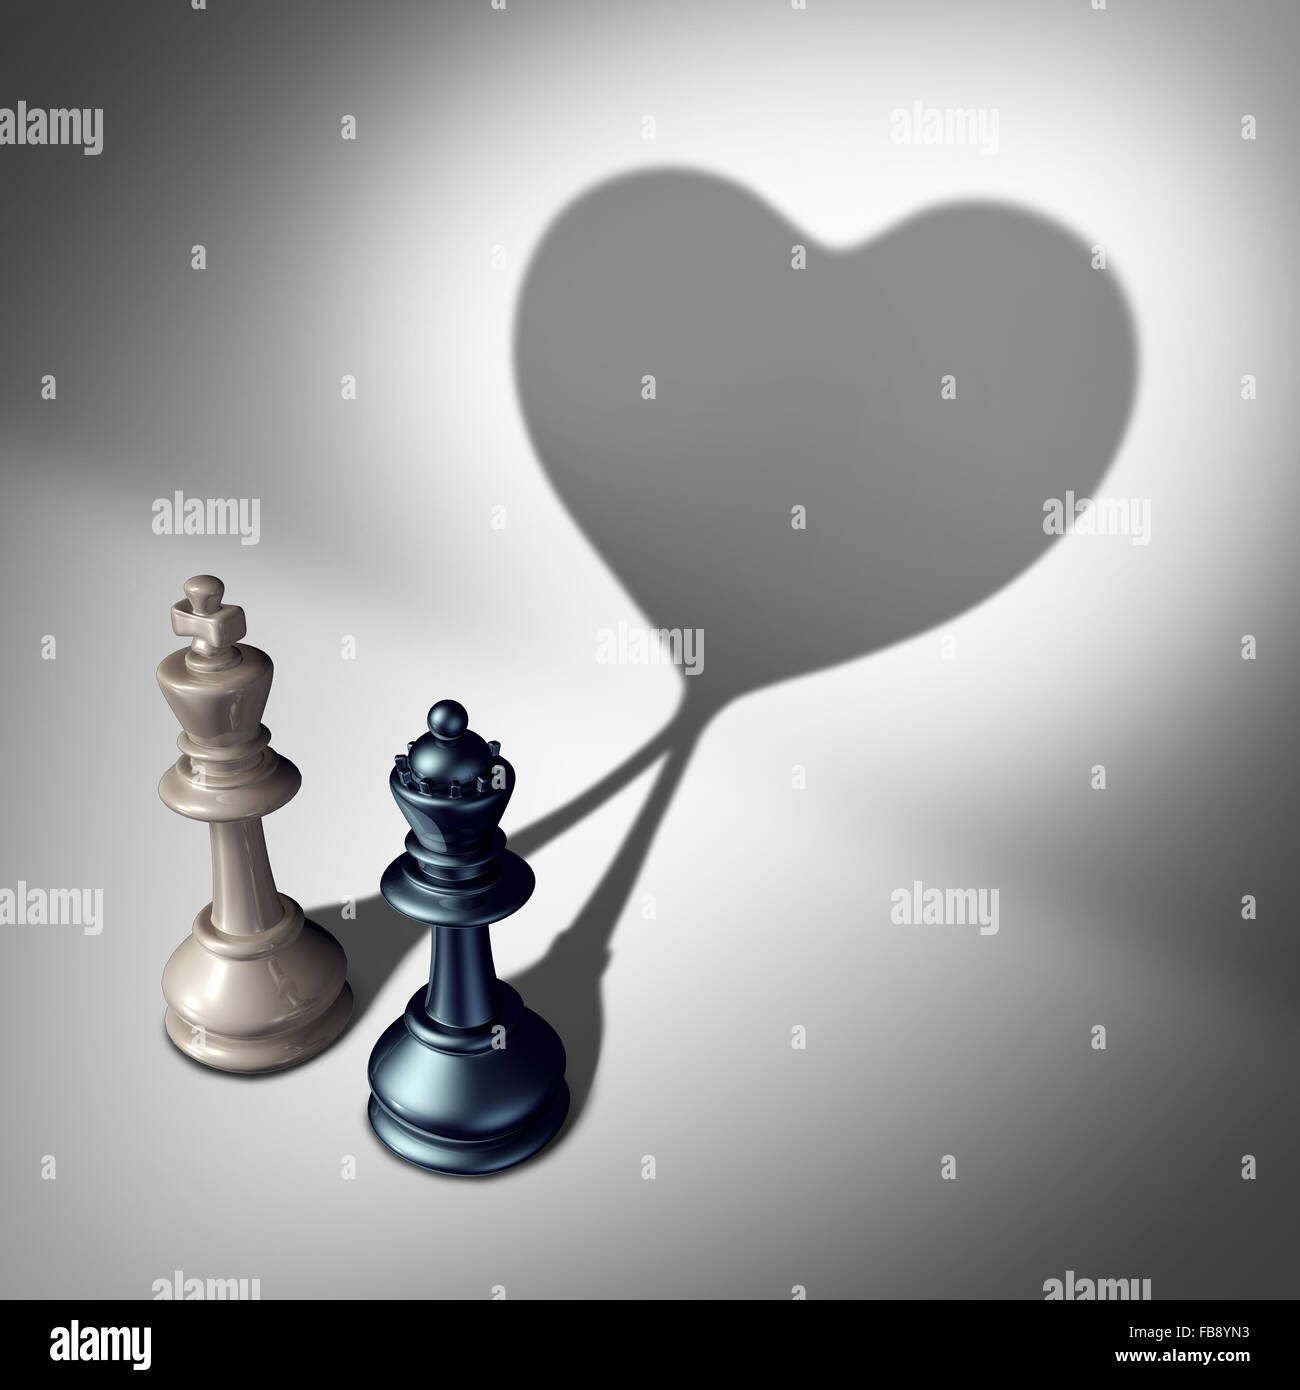 Couple in love as a valentine's day concept as a white king and black queen chess piece casting a united cast - Stock Image